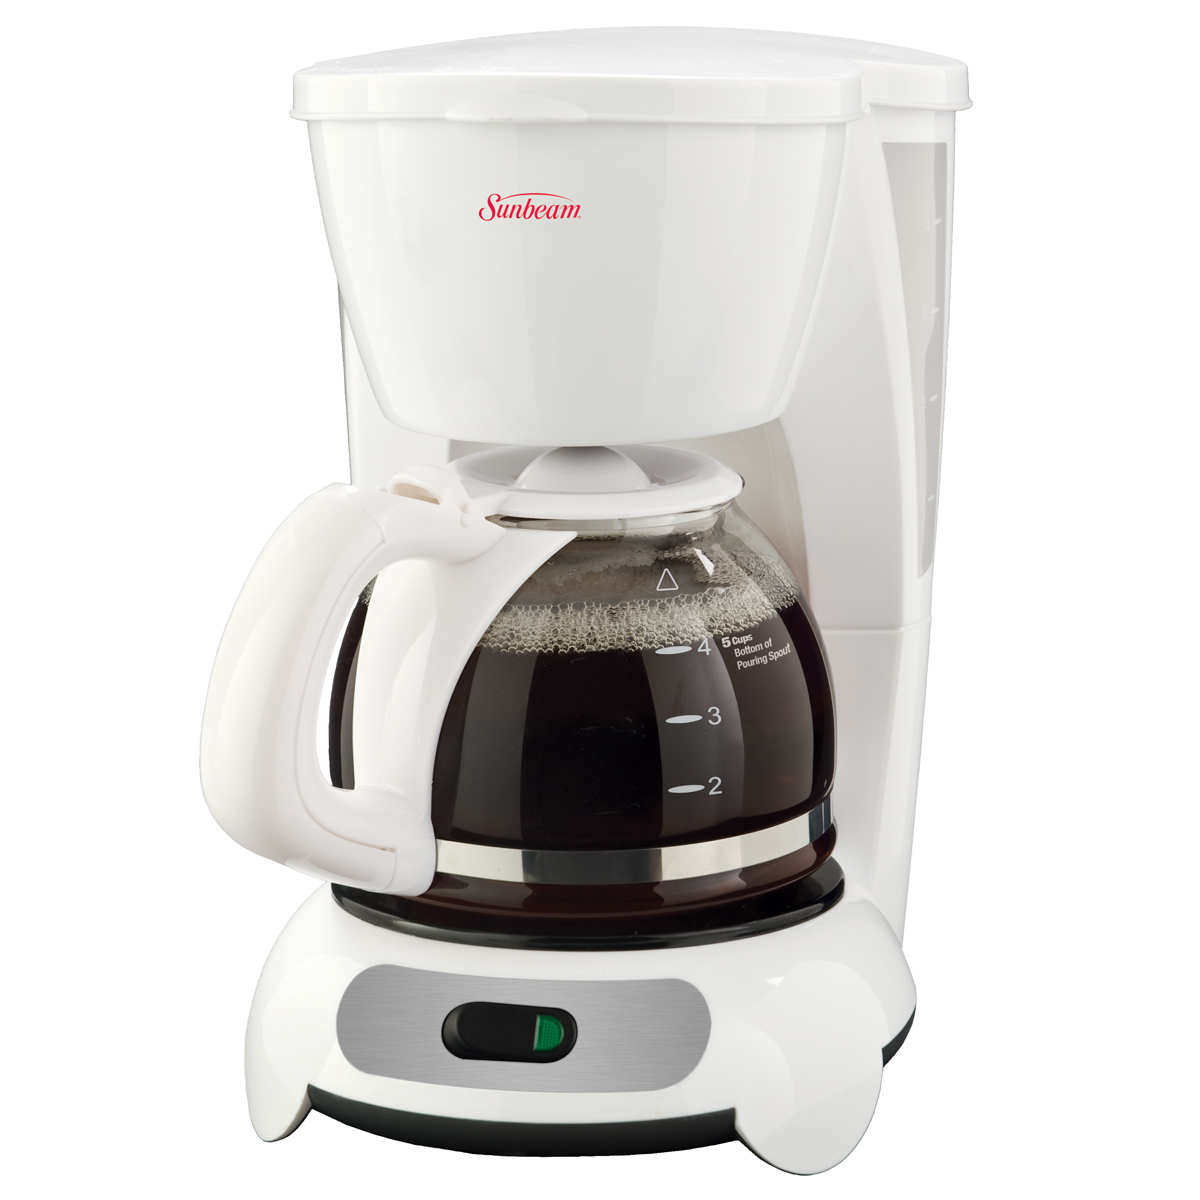 Sunbeam Percolator Coffee Maker : Sunbeam 5-Cup Switch Coffeemaker, White BVSBTF6-033 Sunbeam Canada